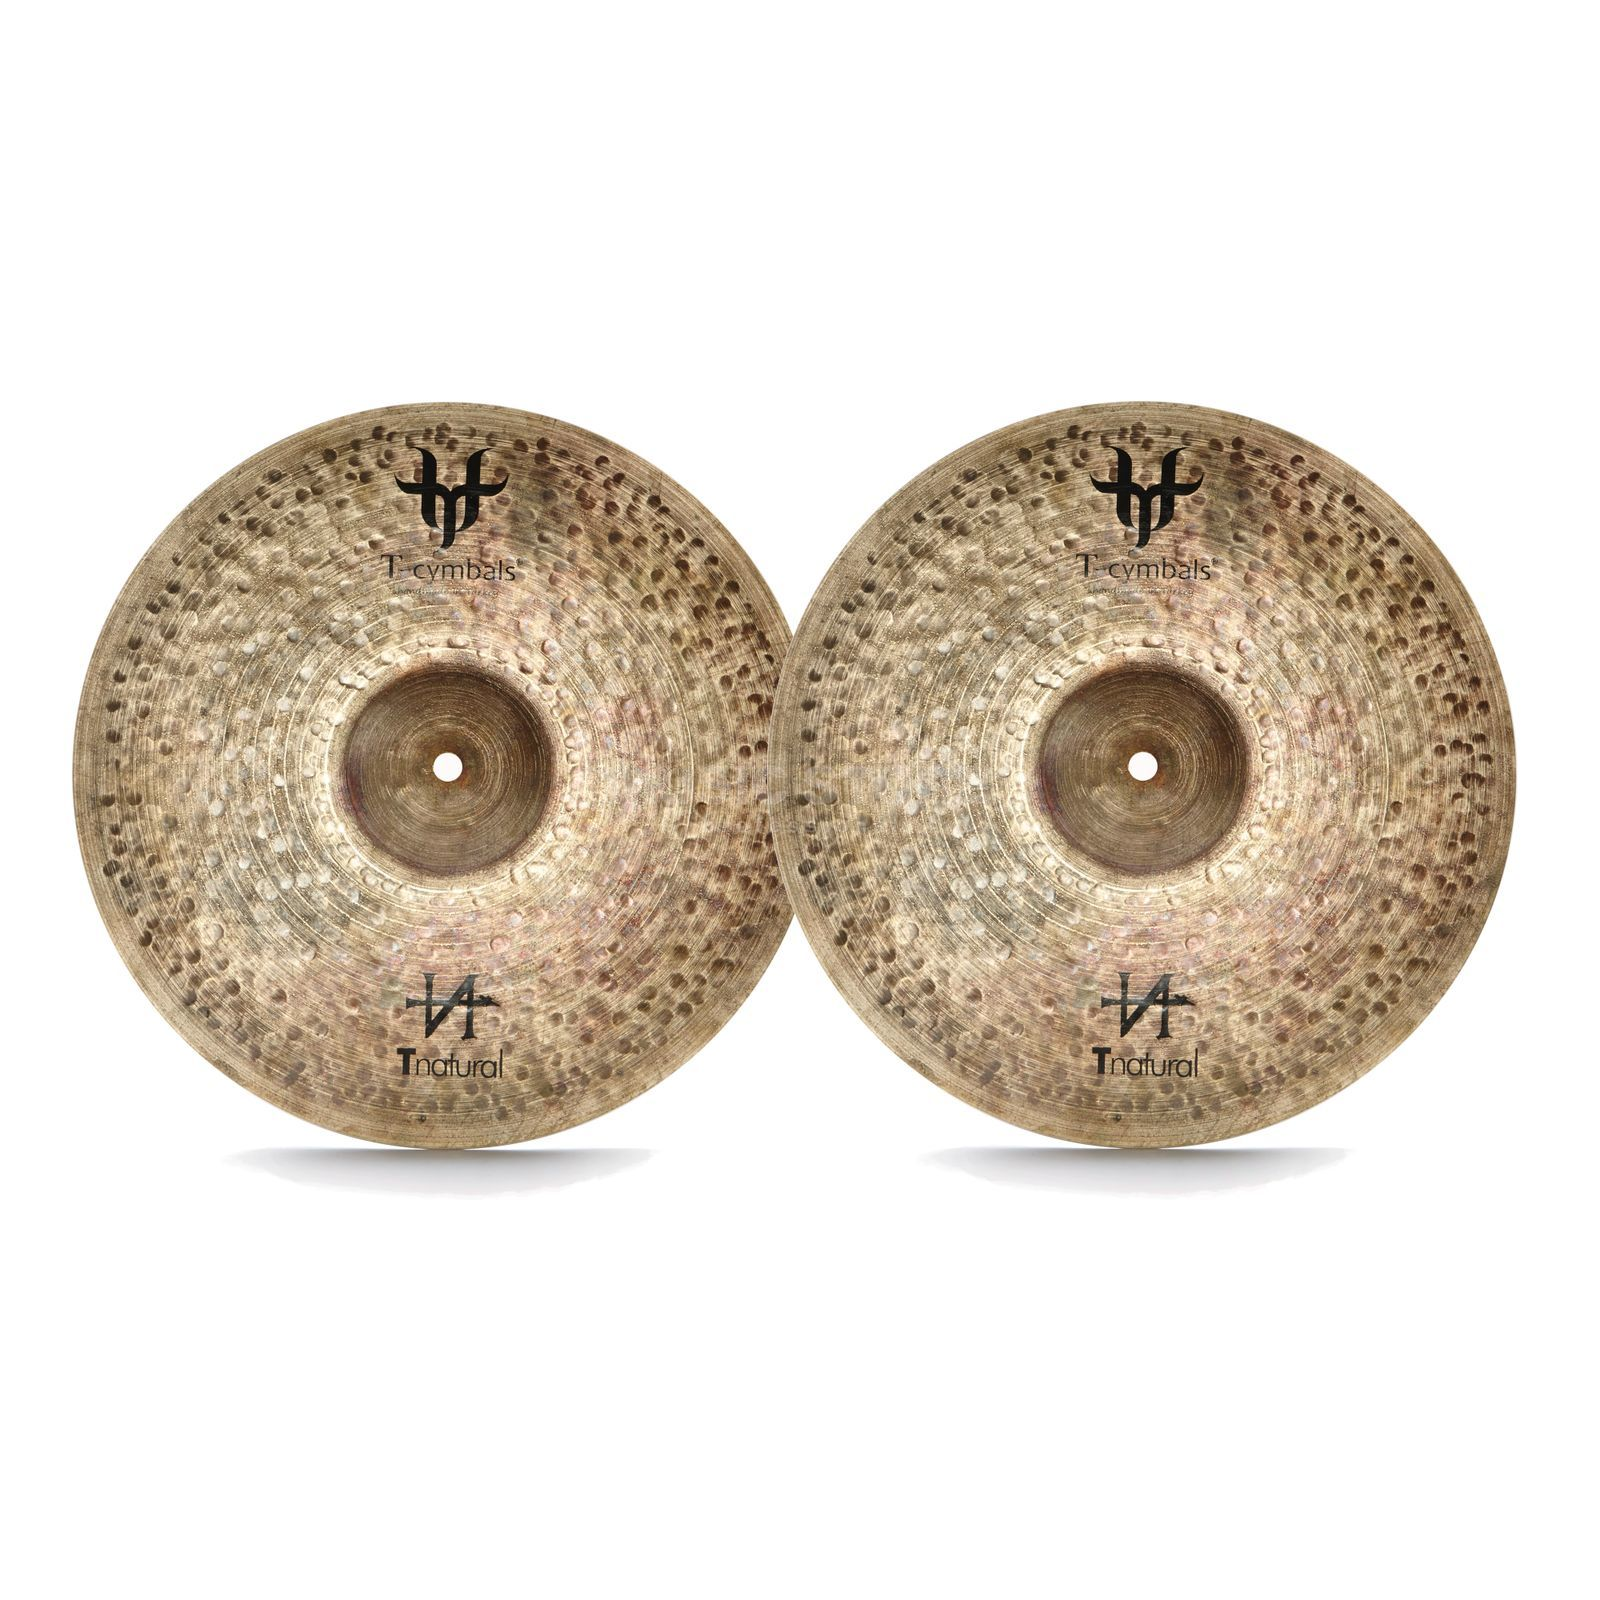 "T-Cymbals T-Natural Light HiHat 14"" Product Image"